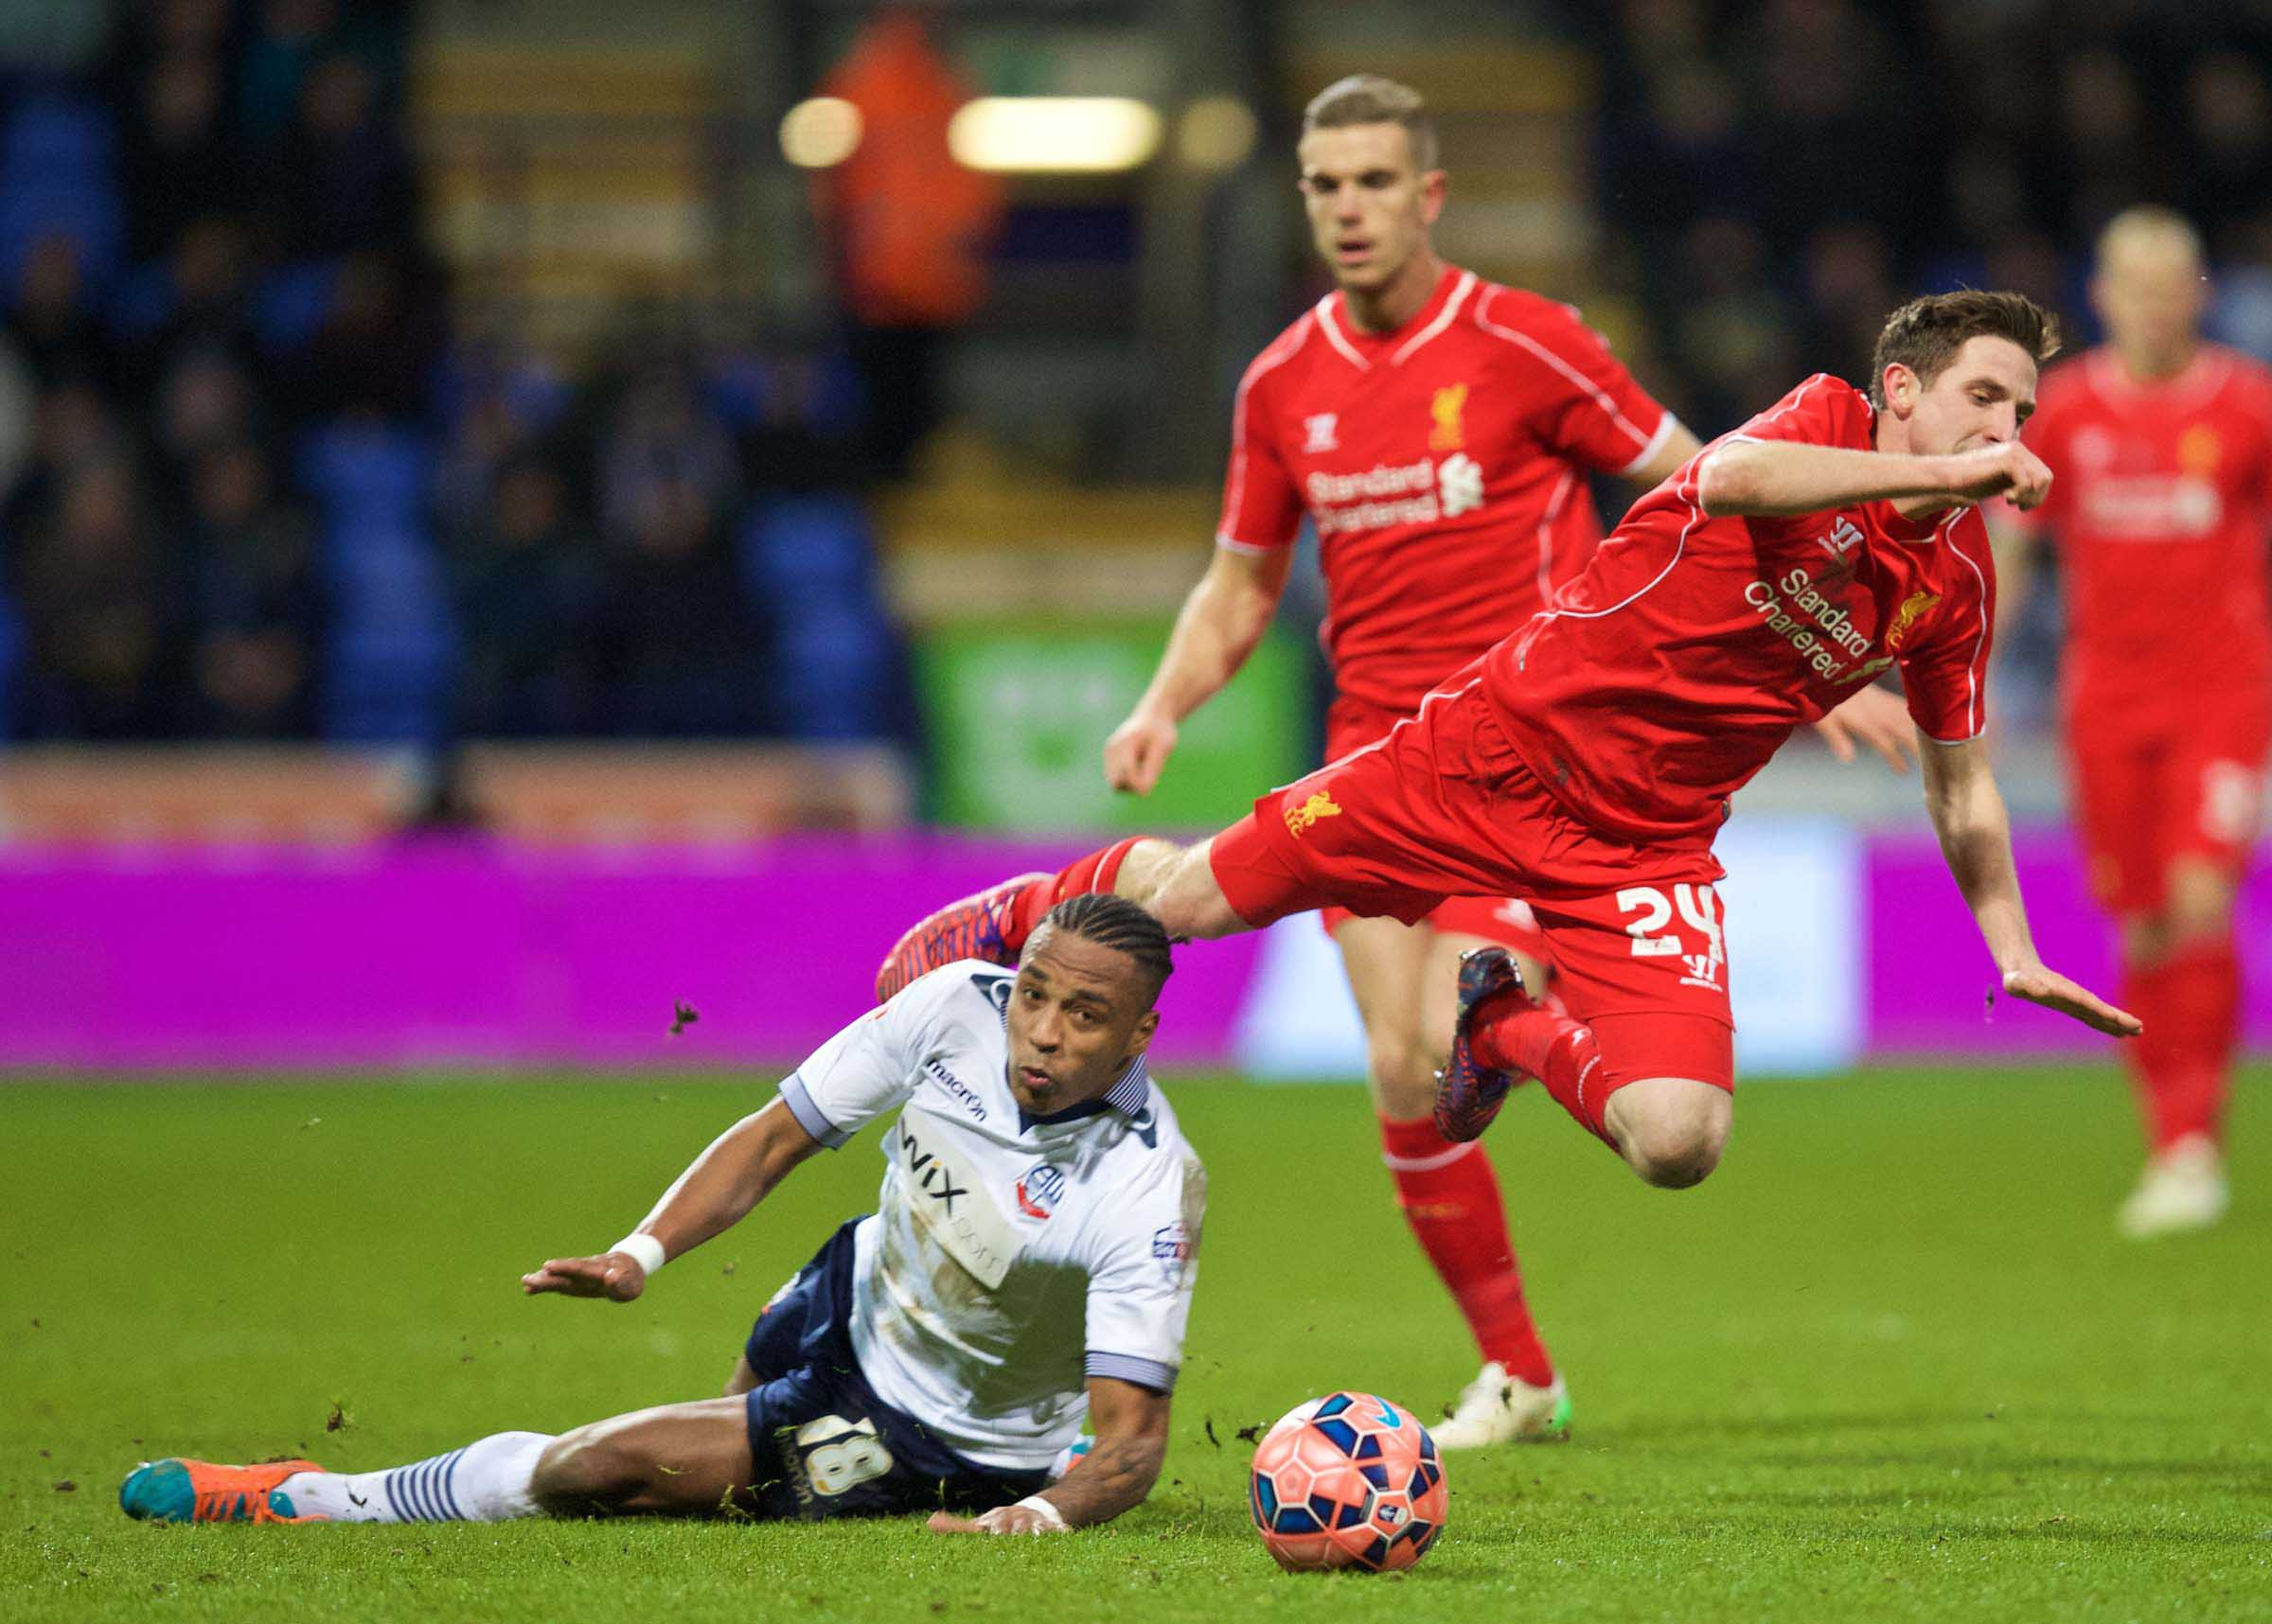 Football - FA Cup - 4th Round Replay - Bolton Wanderers FC v Liverpool FC